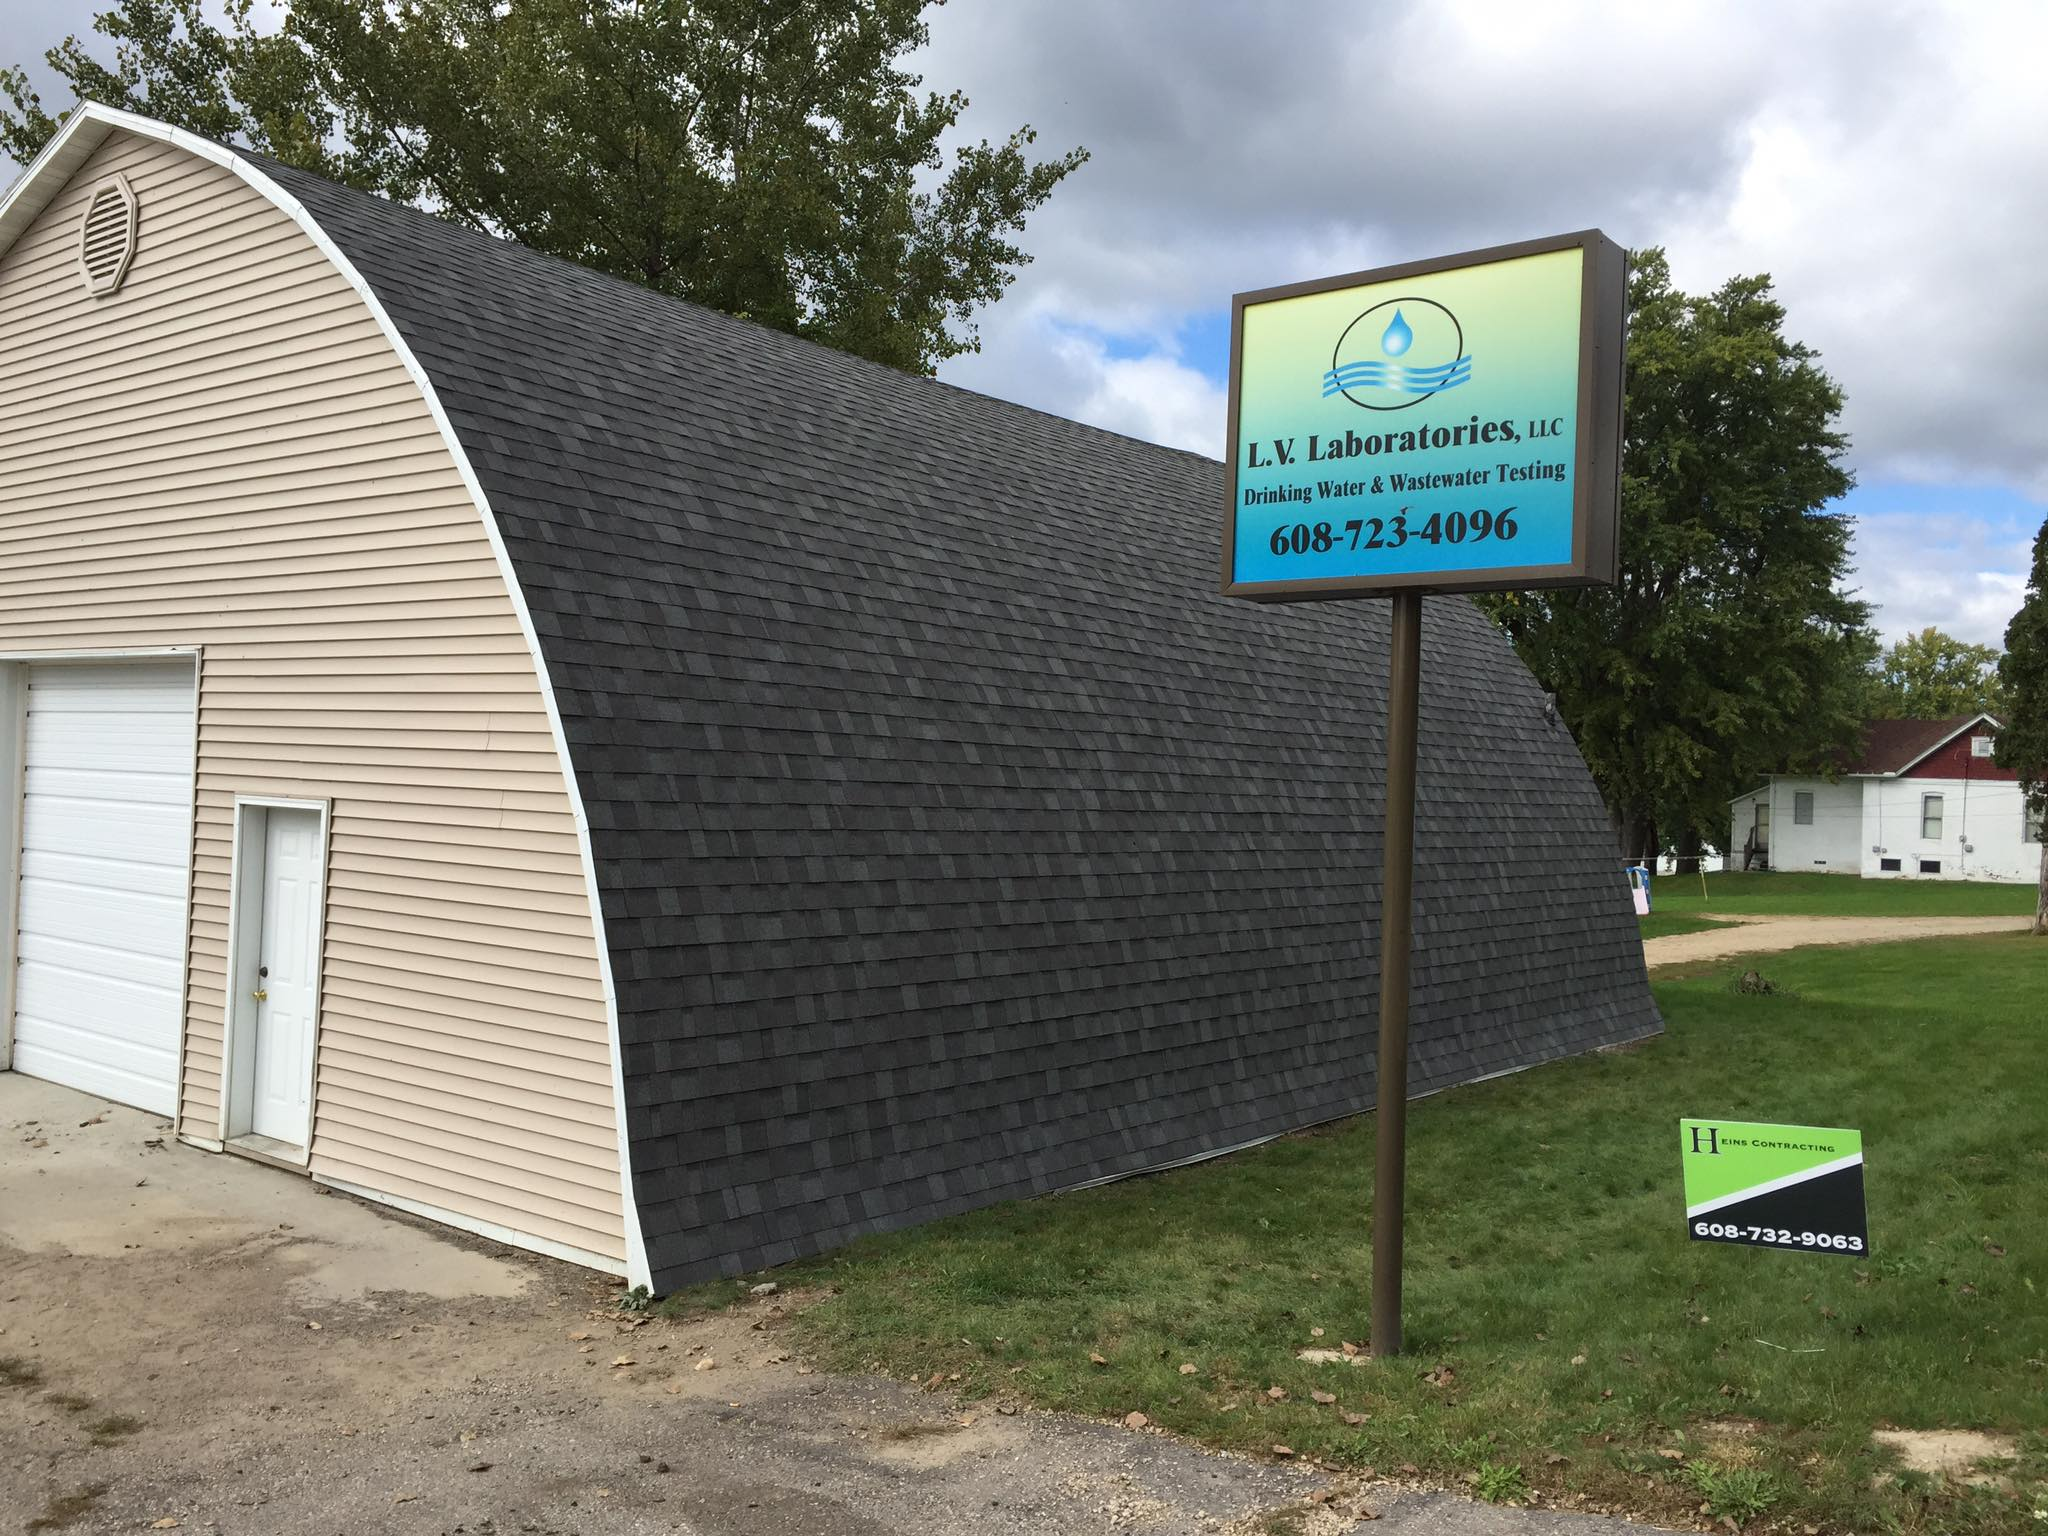 new garage roof Madison WI | Henis Contracting Madison WI